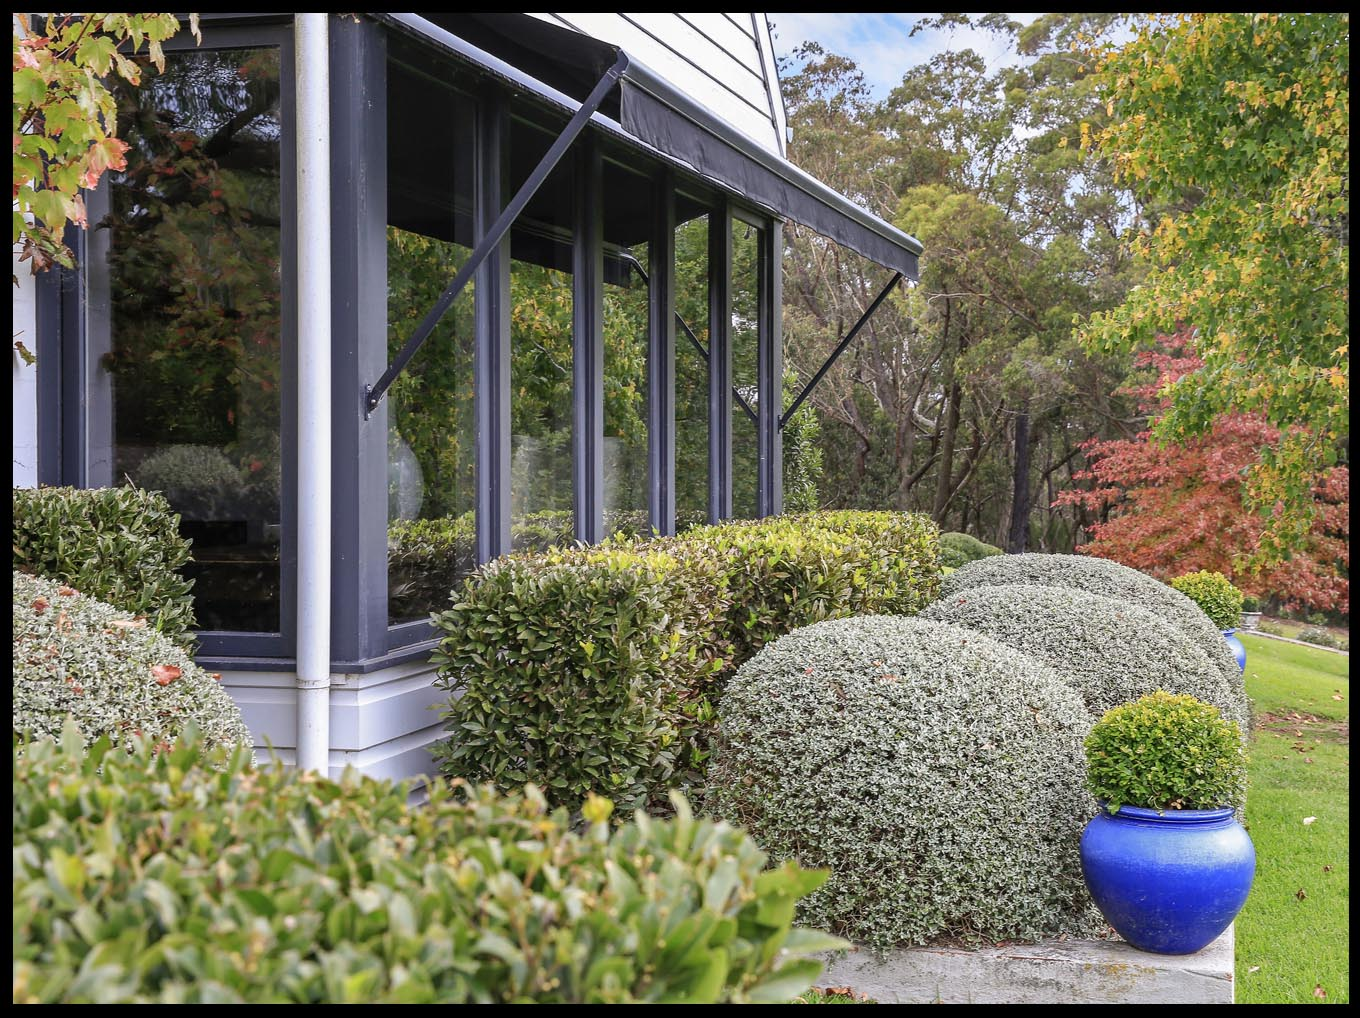 HOME PAGE_Gallery_Exterior Gardens_White Sheds.jpg